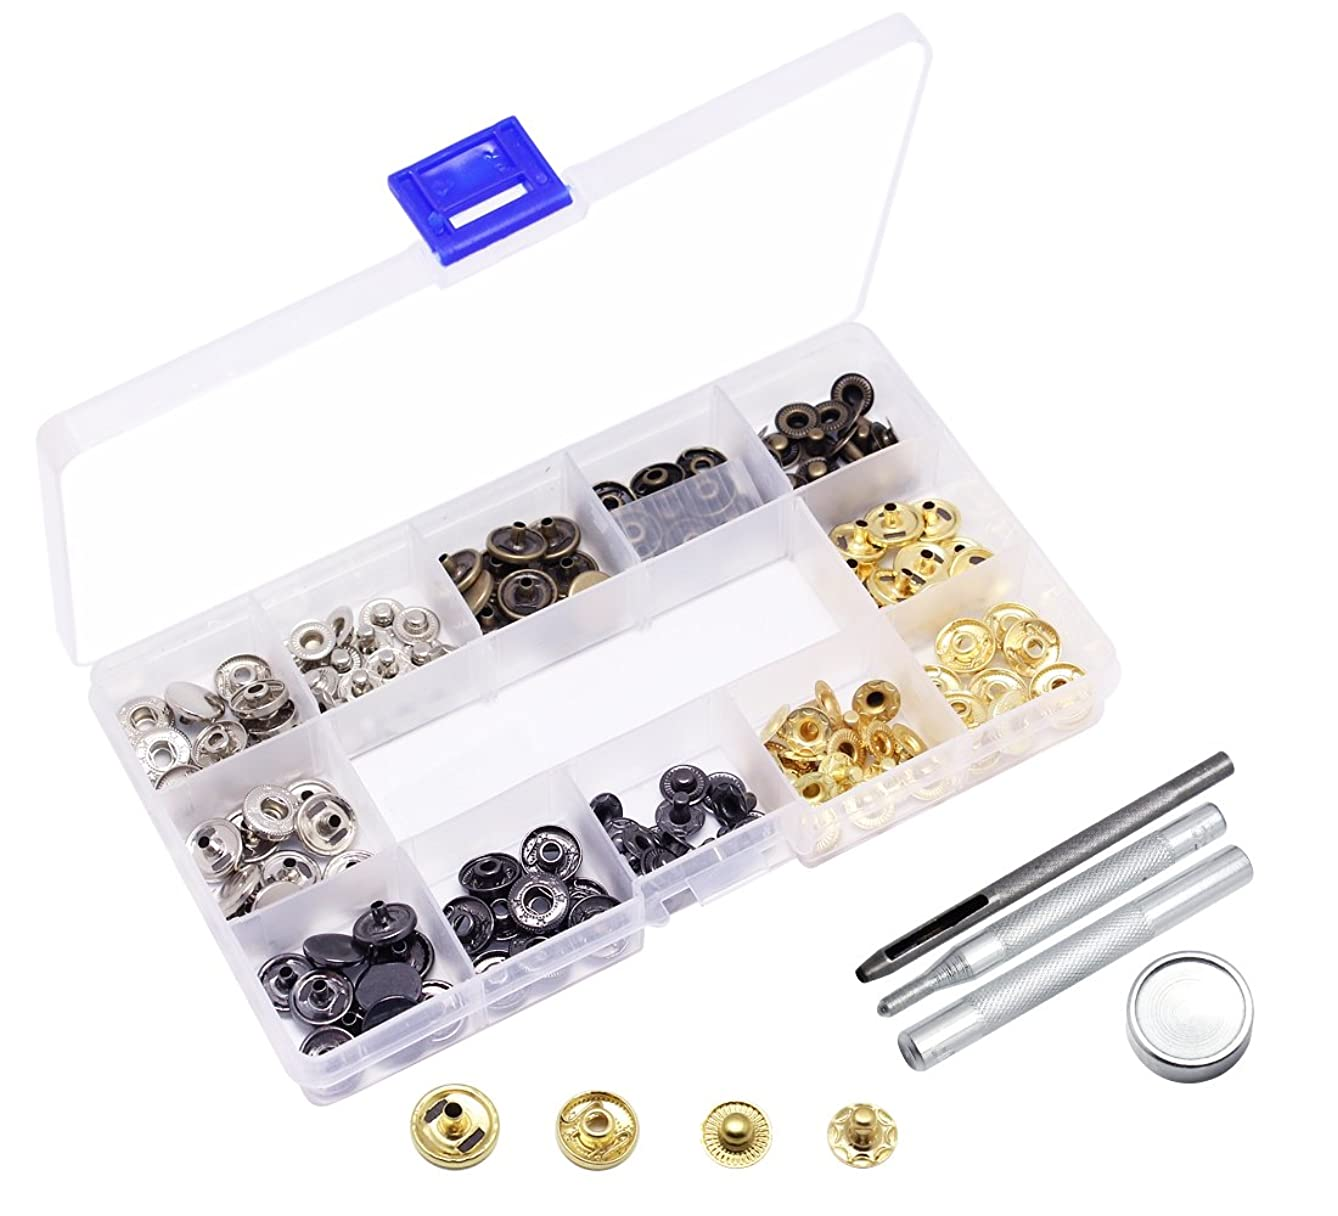 Yotako 40 Set Snap Fastener Leather Snaps Button Kit Press Studs with 4 Pieces Fixing Tools, 12.5mm in Diameter